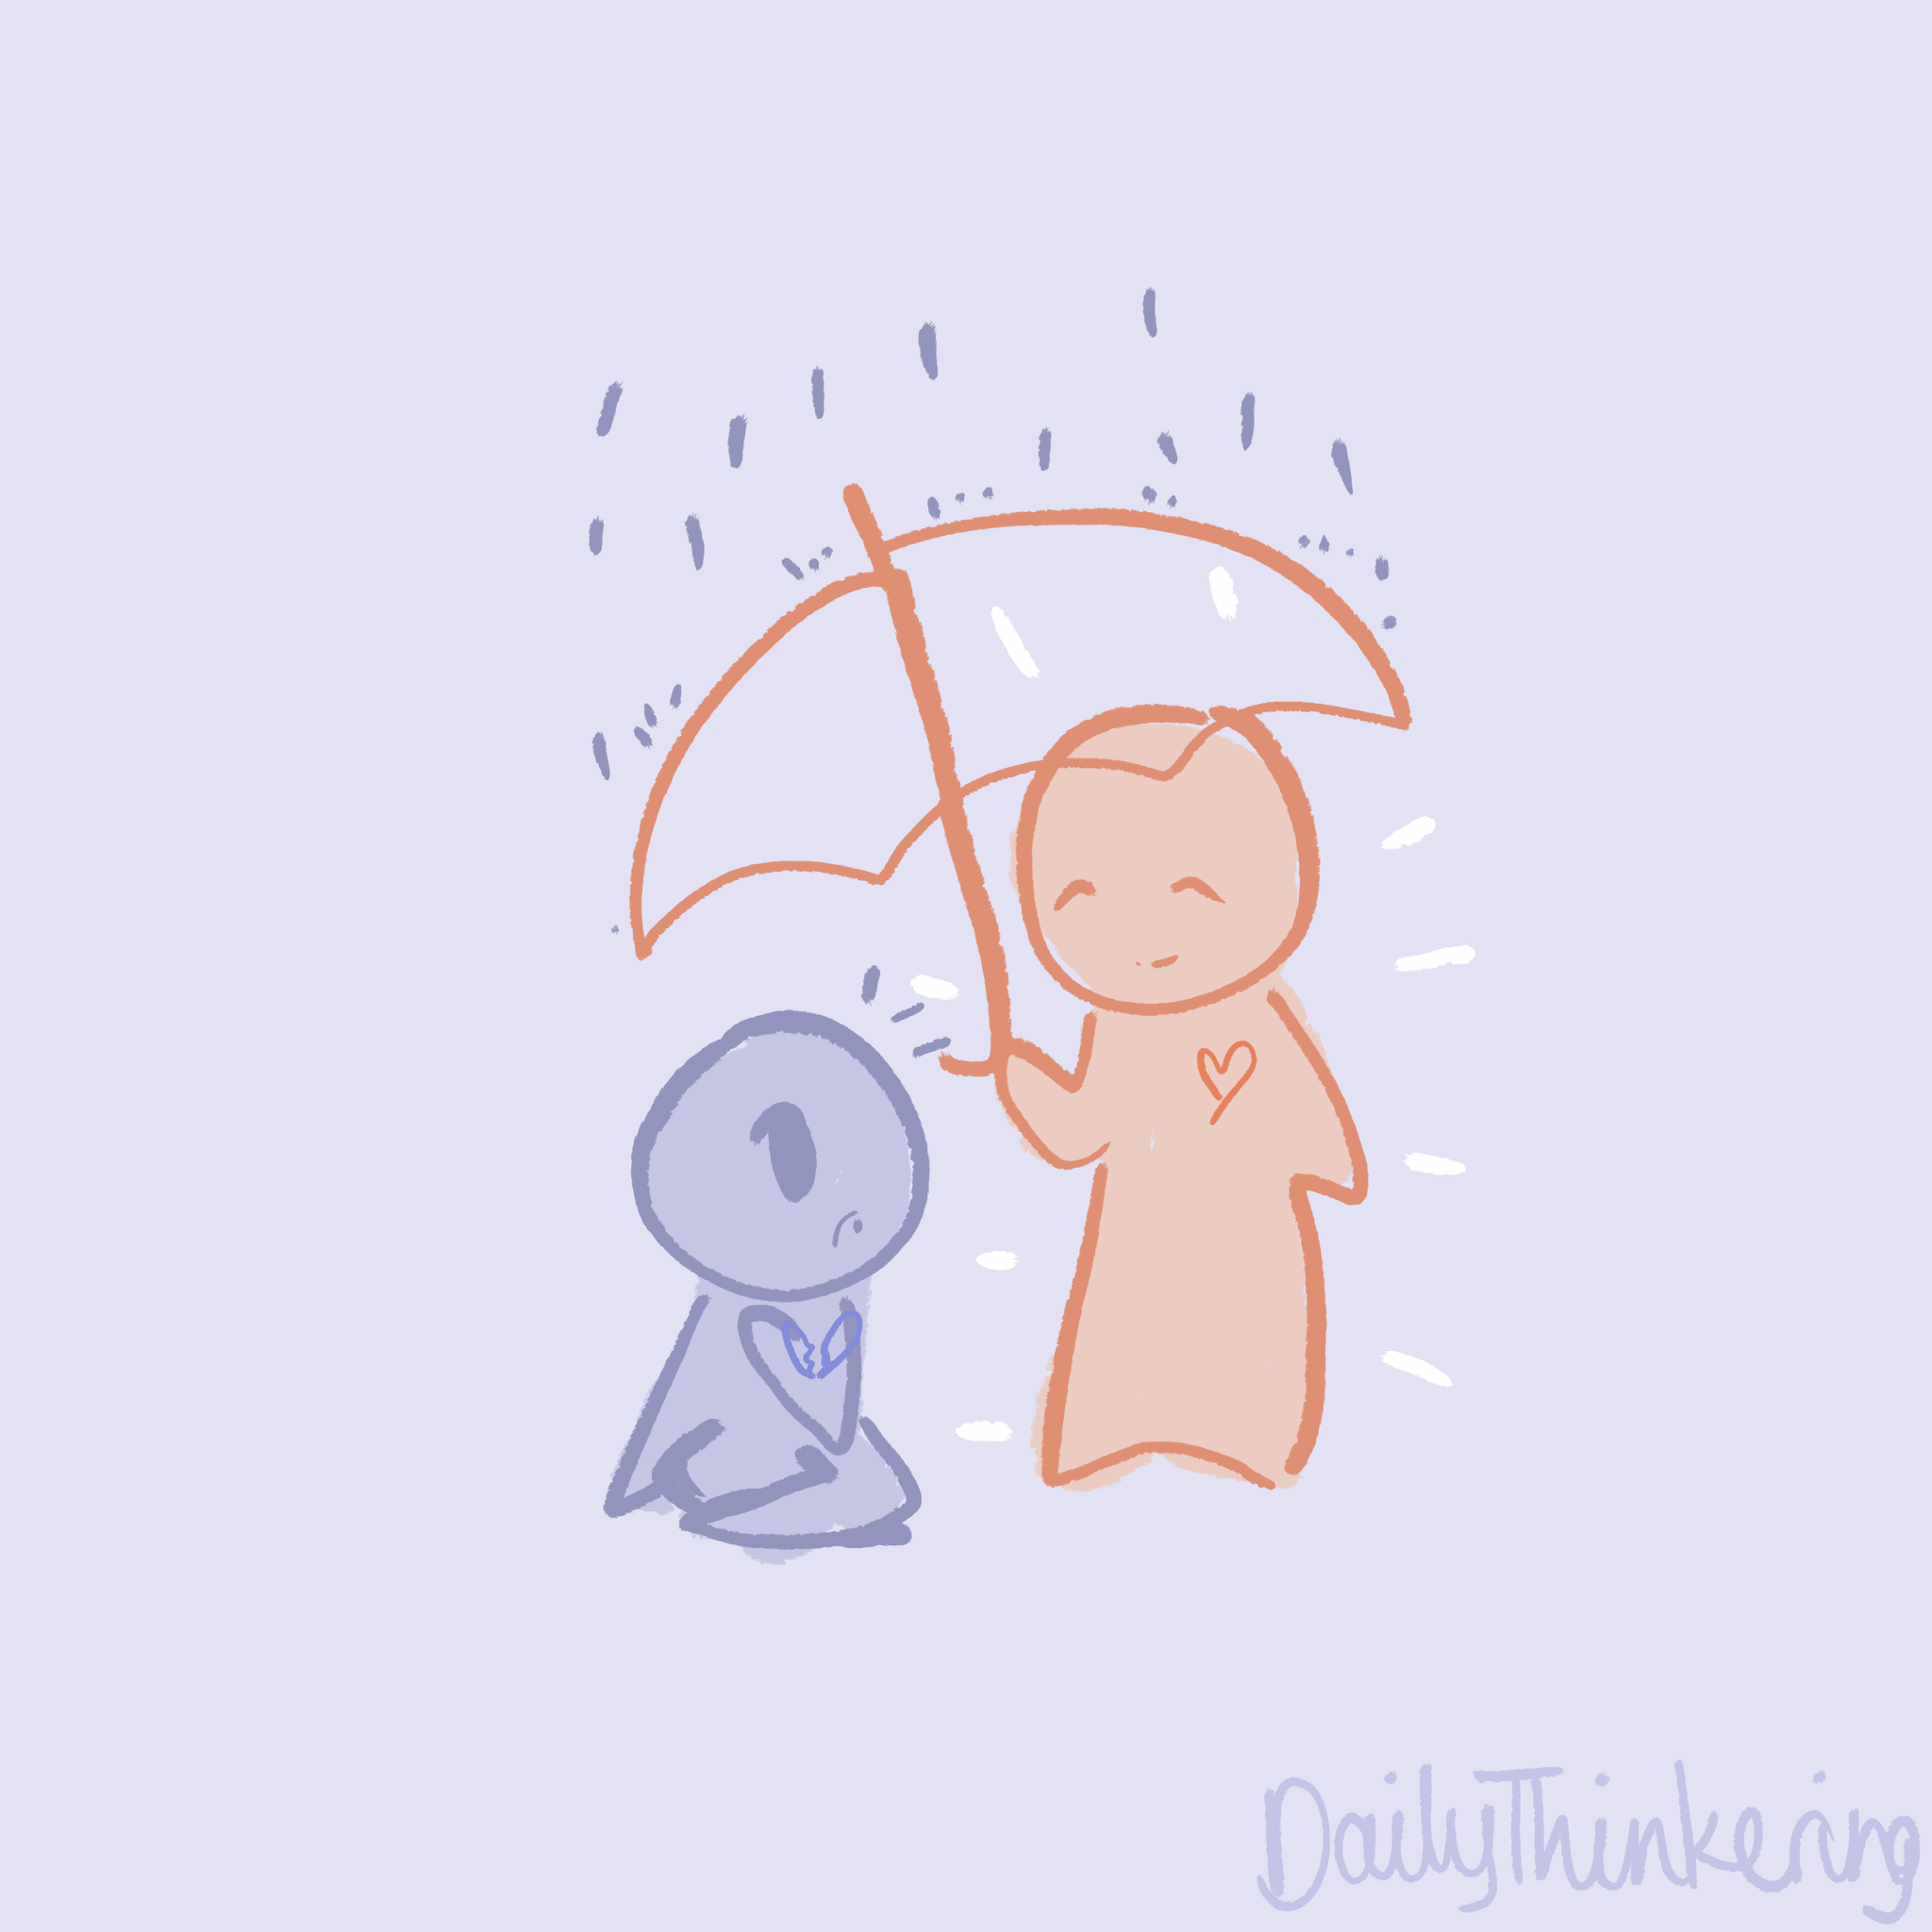 Person with a kind heart sheltering someone with an umbrella as it rains